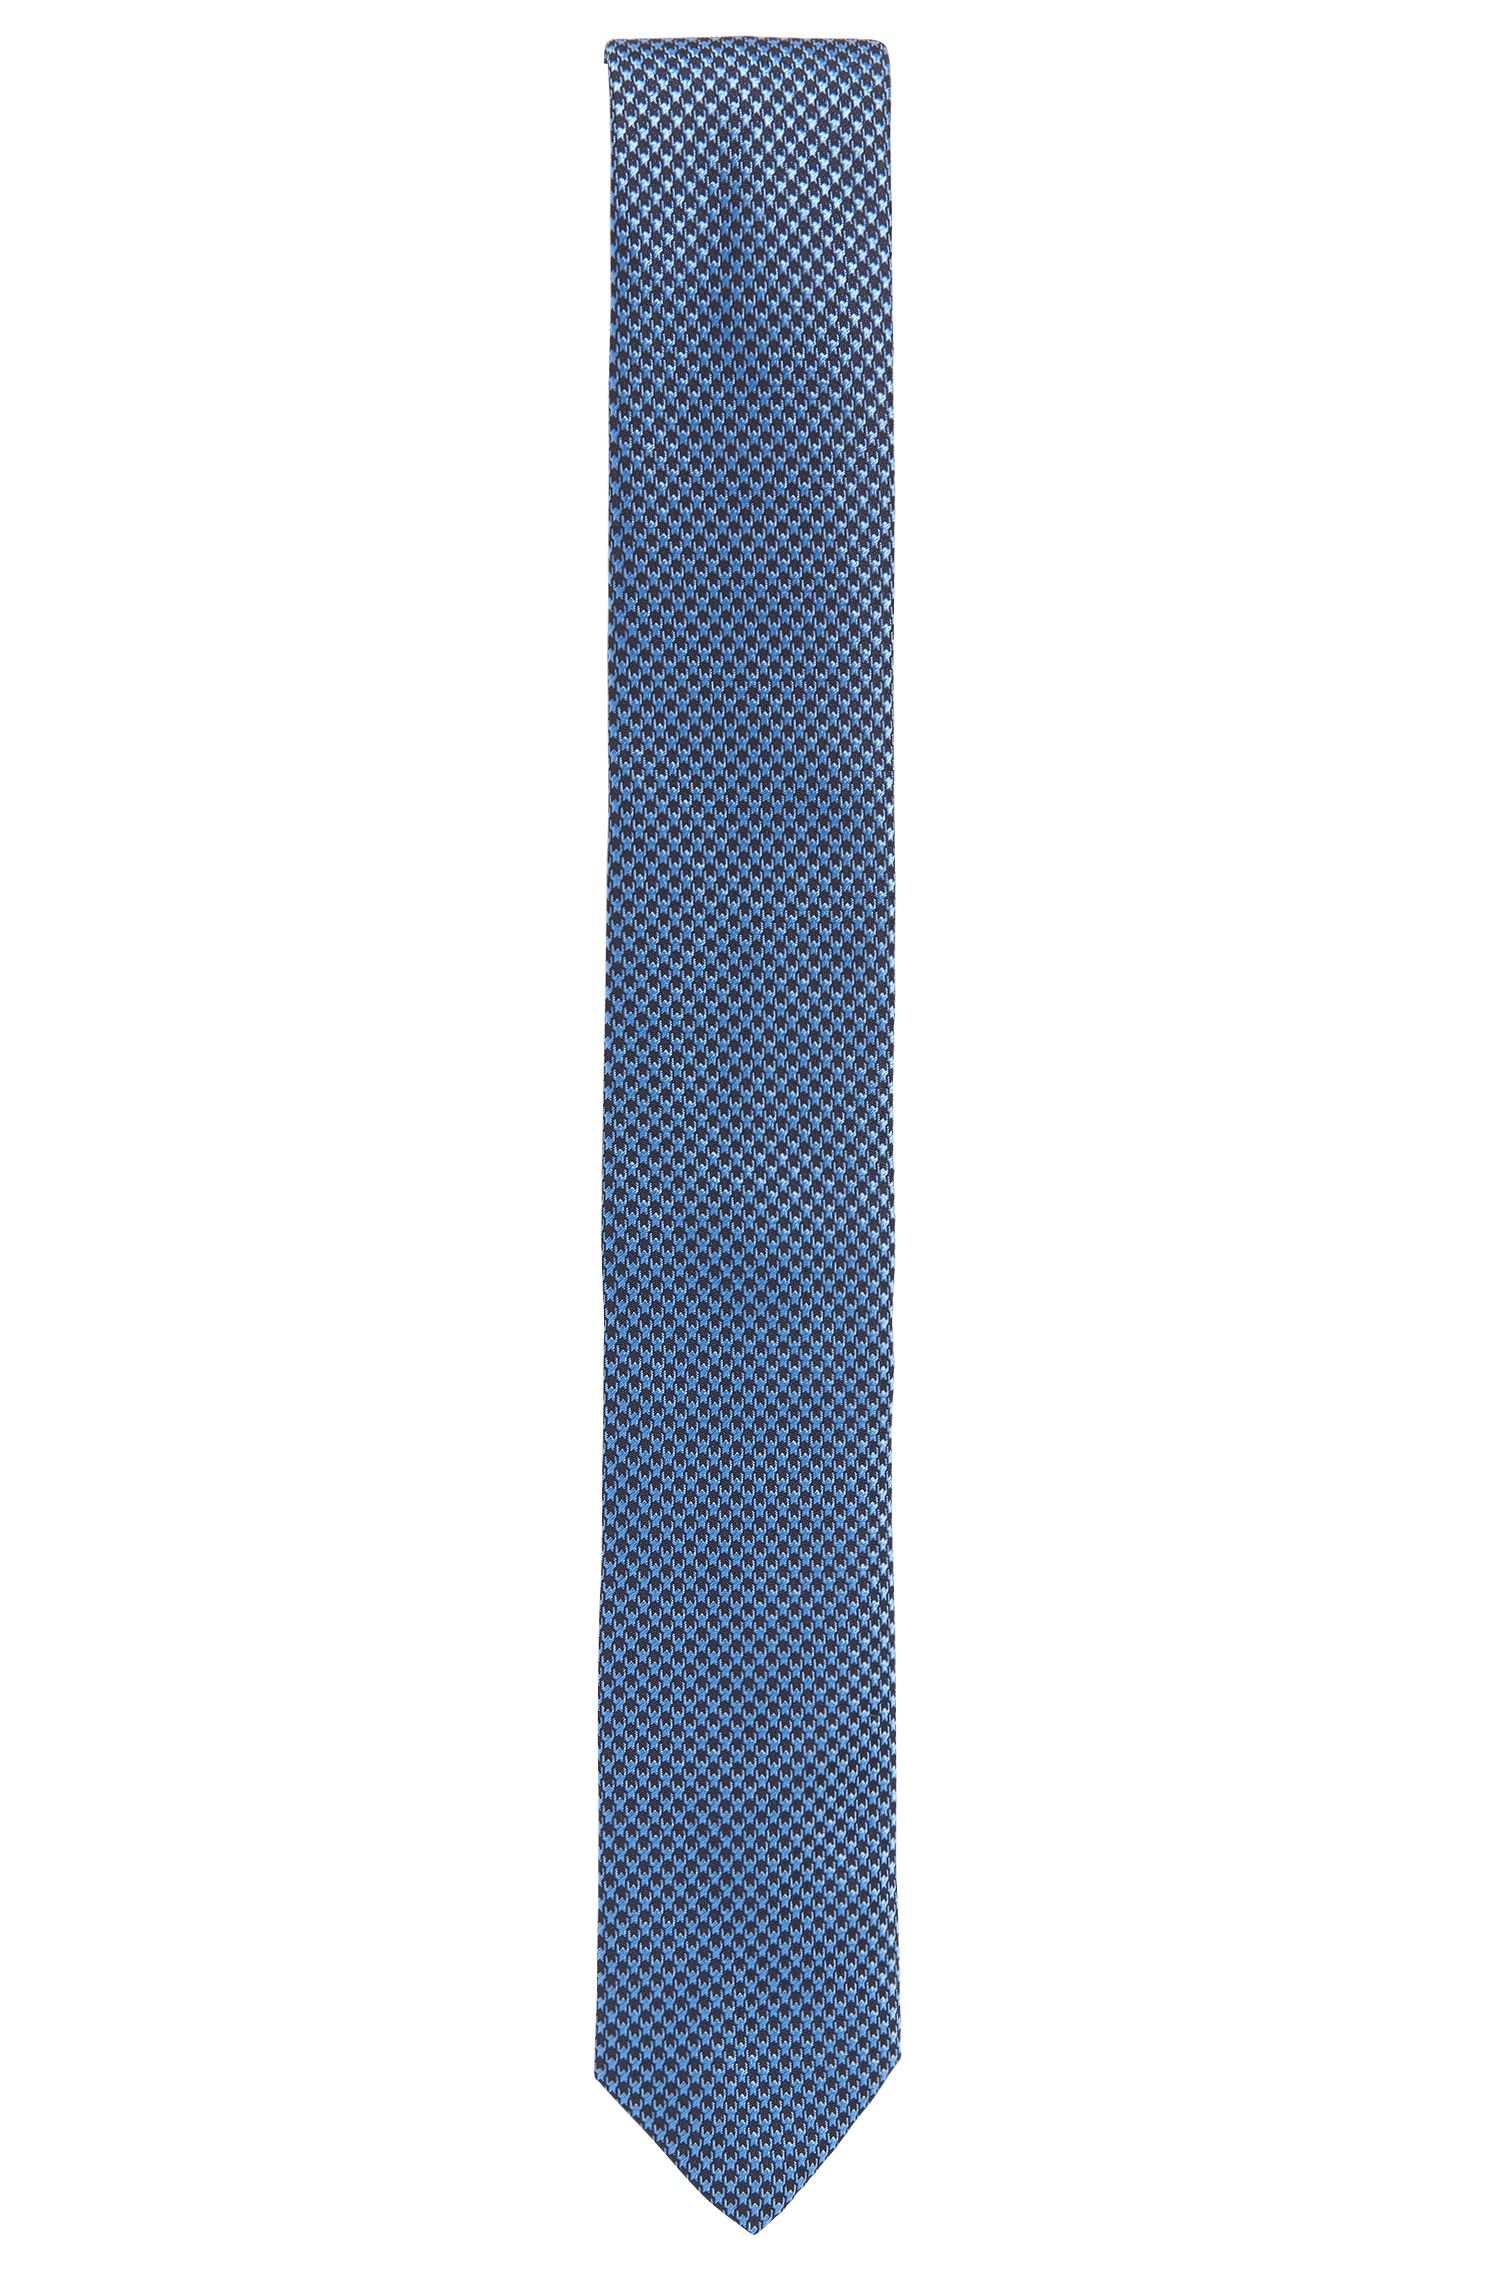 Patterned pure silk tie